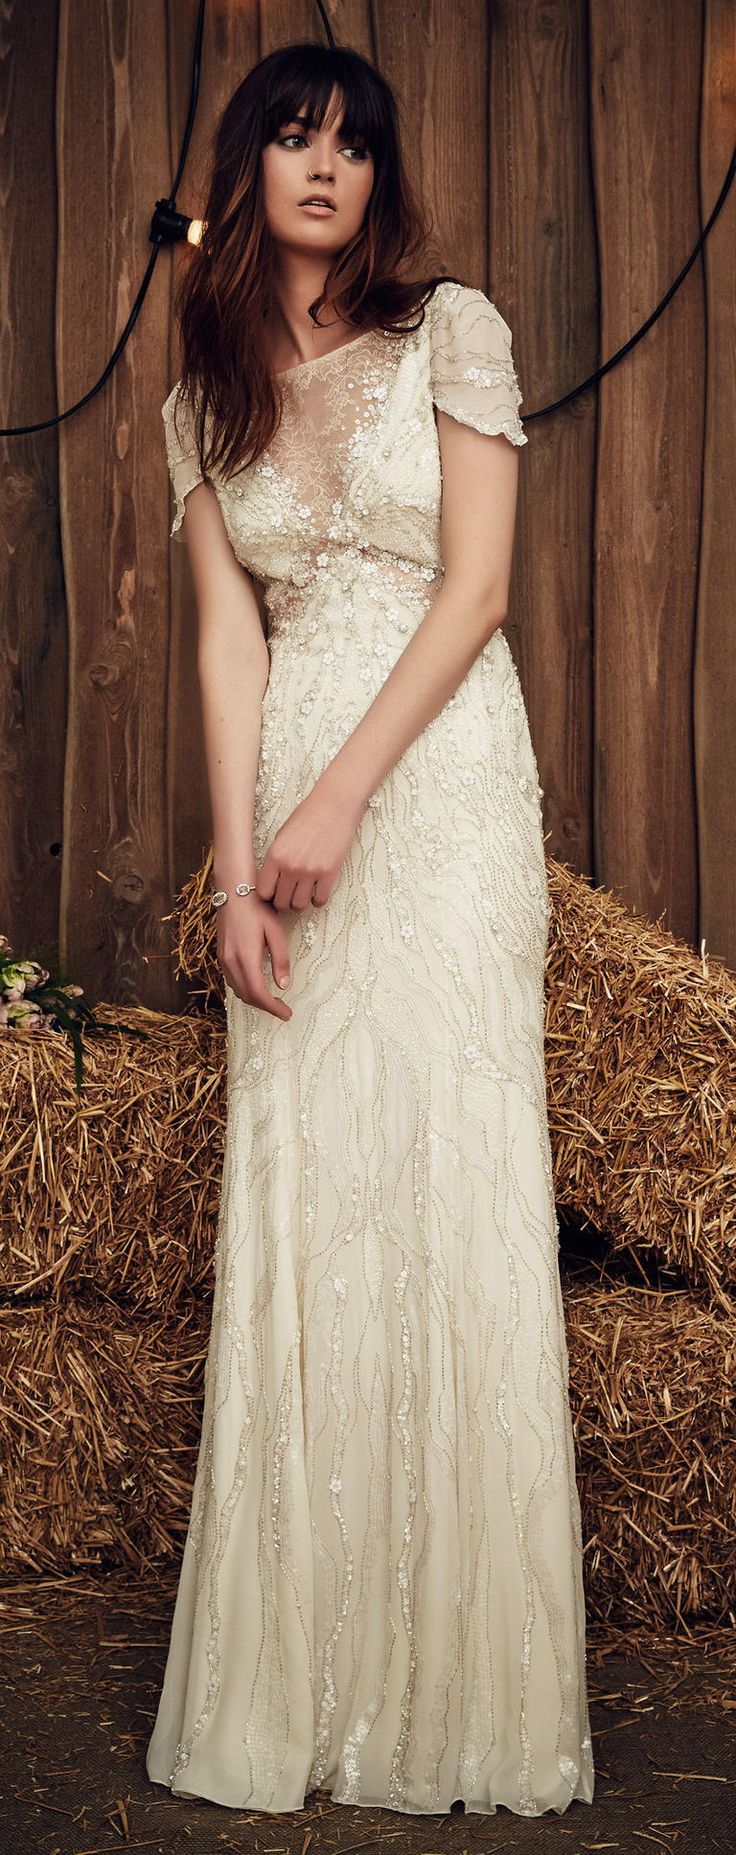 Jenny Packham Spring 2017 Nashville wedding dress with lace bodice and 3-D floral appliqués on the bodice, short sleeves and down the skirt alongside sequins and gold threading